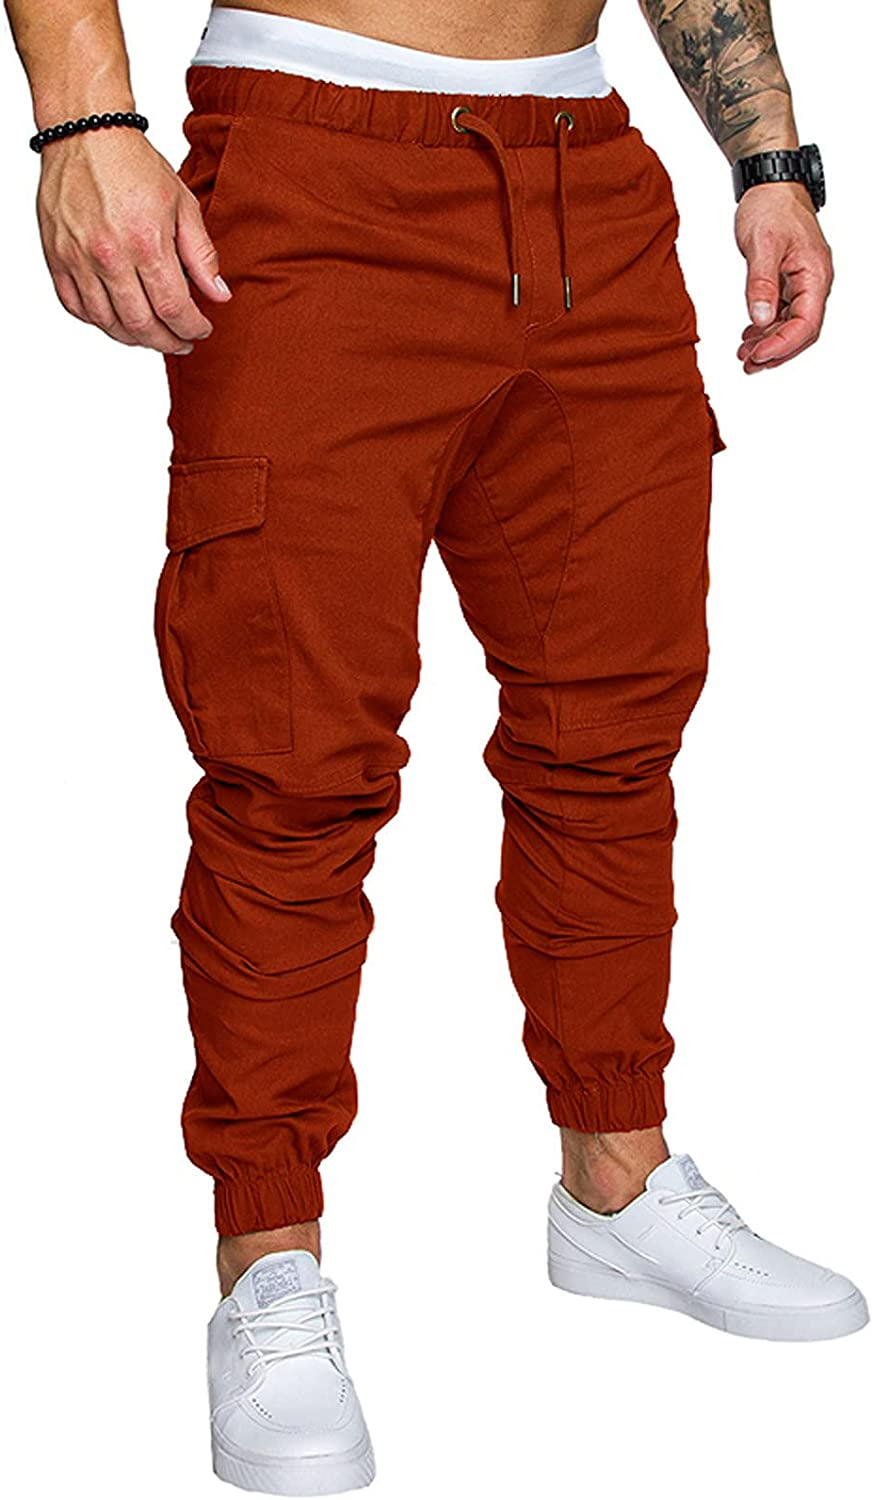 specialty shop raillery Men's Cotton Cargo Pants Fit Free Shipping Cheap Bargain Gift Casual Jogger Slim